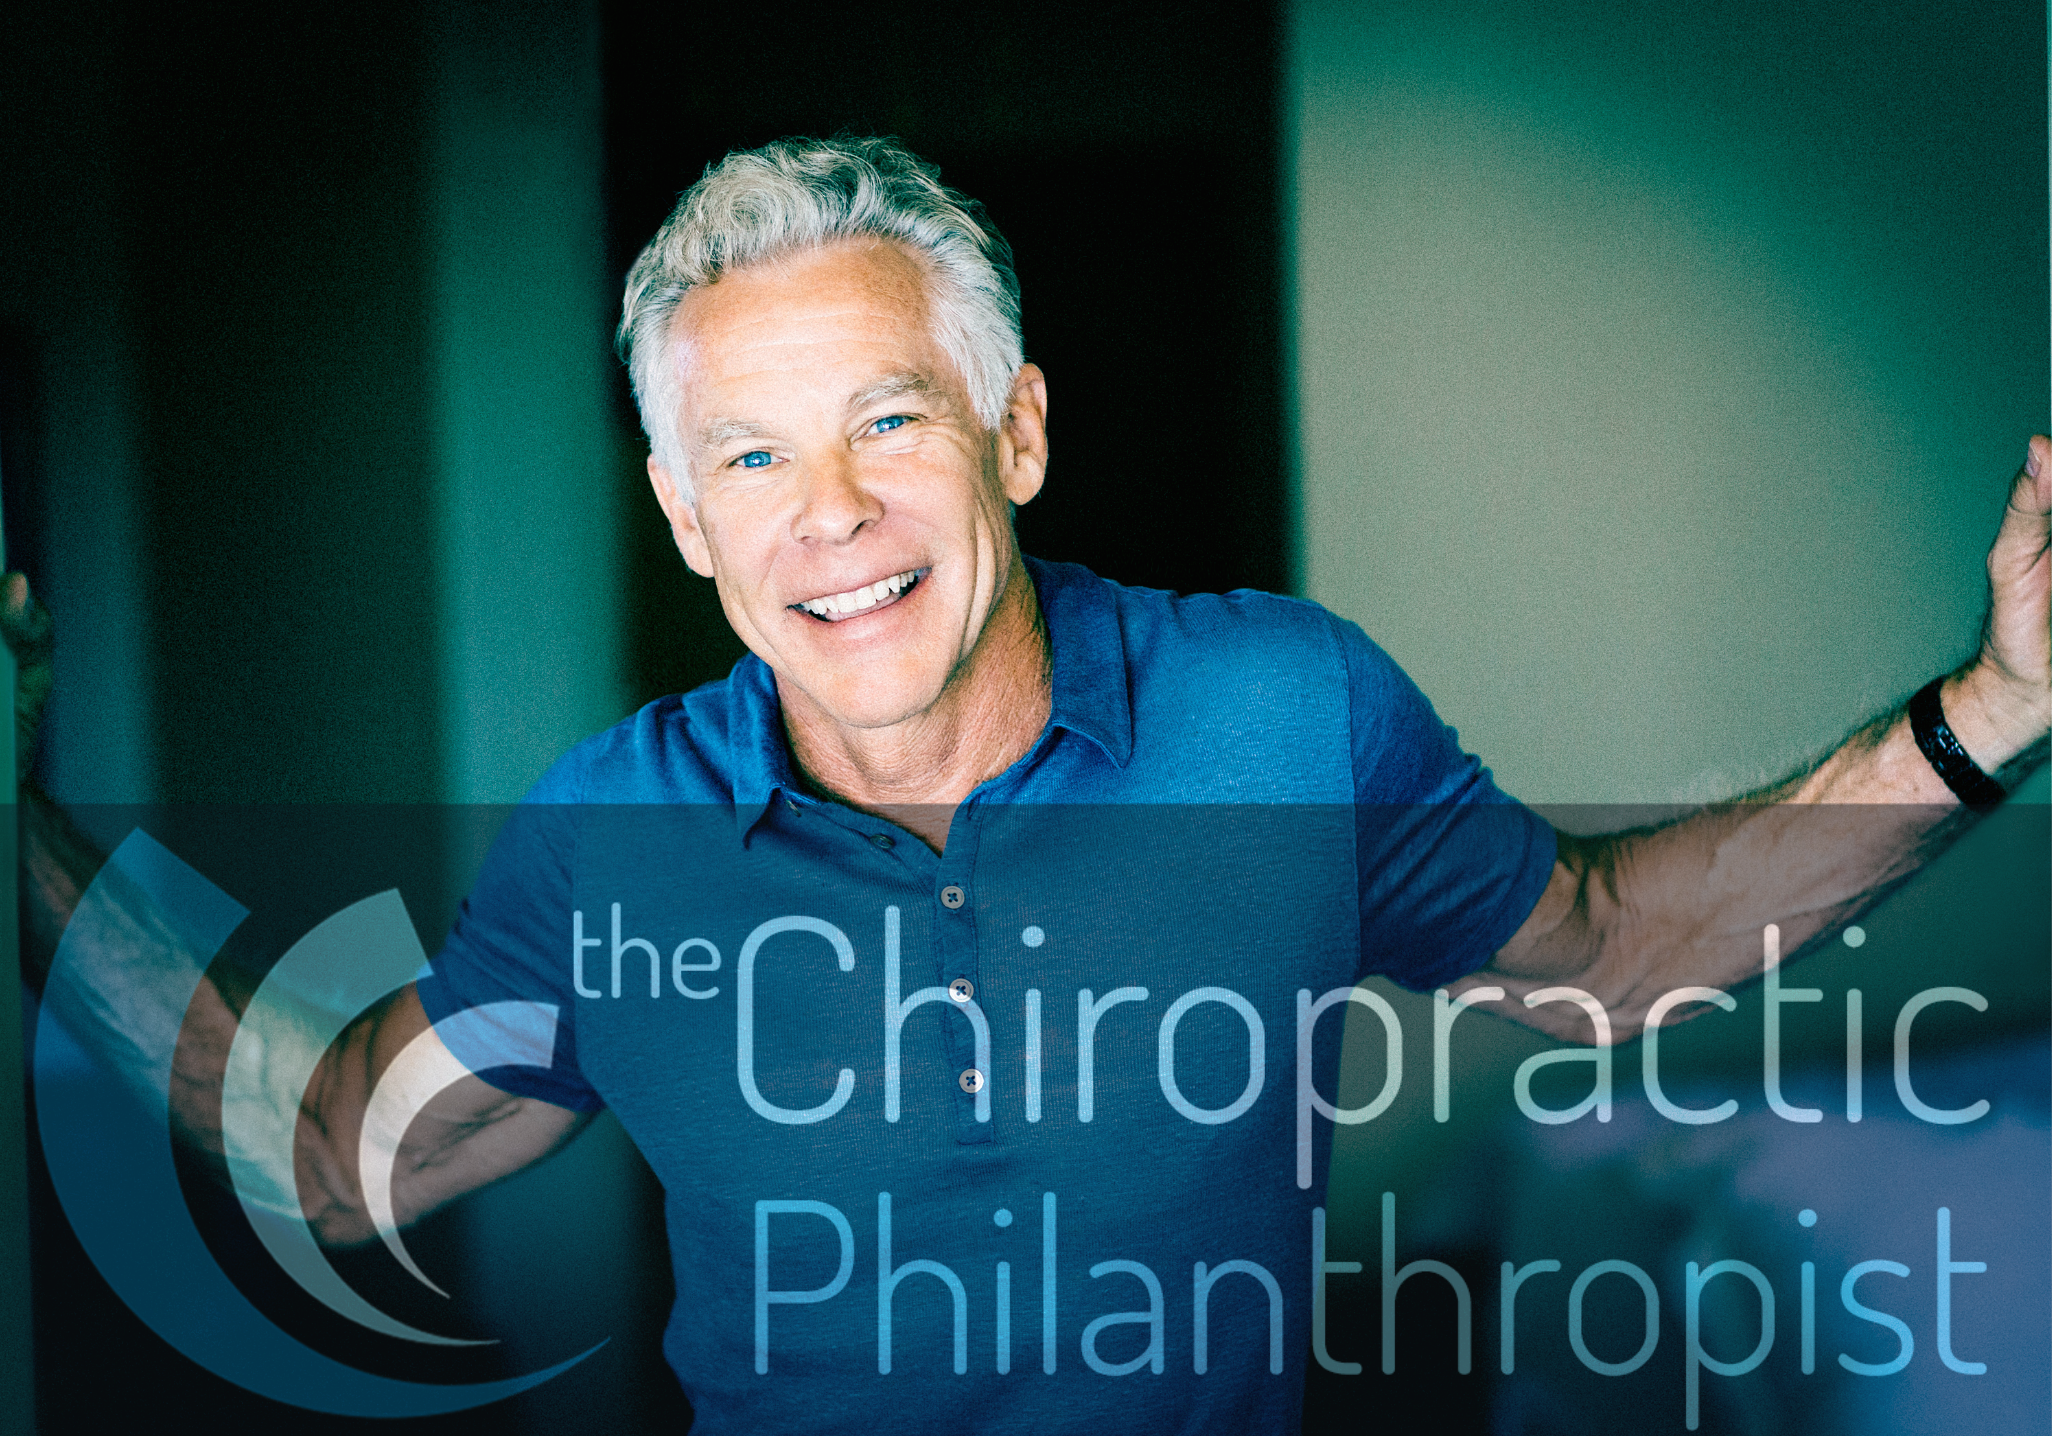 Ed author at the chiropractic philanthropist page 13 of 30 mark malvernweather Image collections